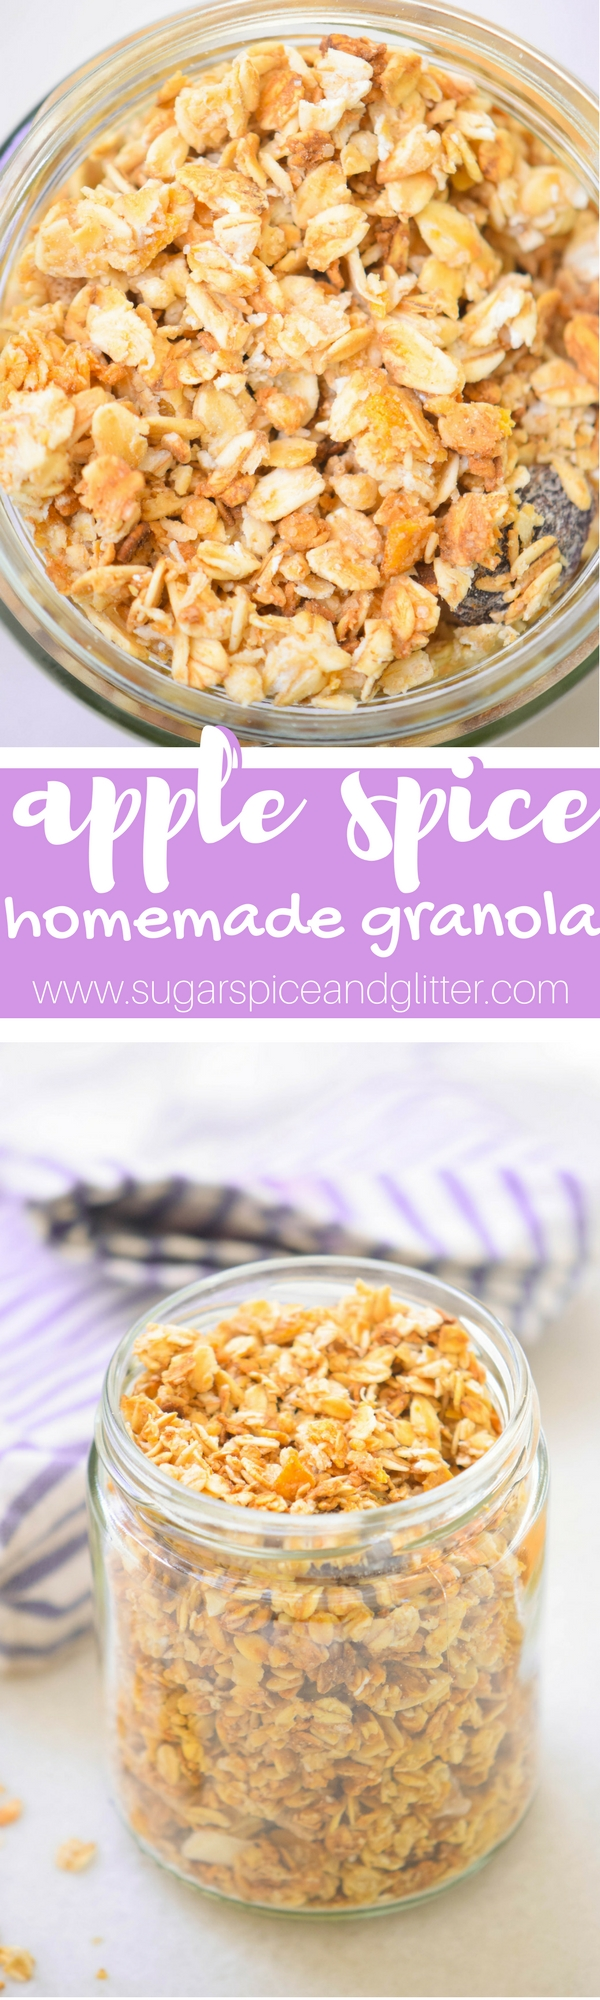 Healthy Homemade Granola sweetened with honey and dates, this Apple Spice granola is perfect for an easy fall breakfast recipe